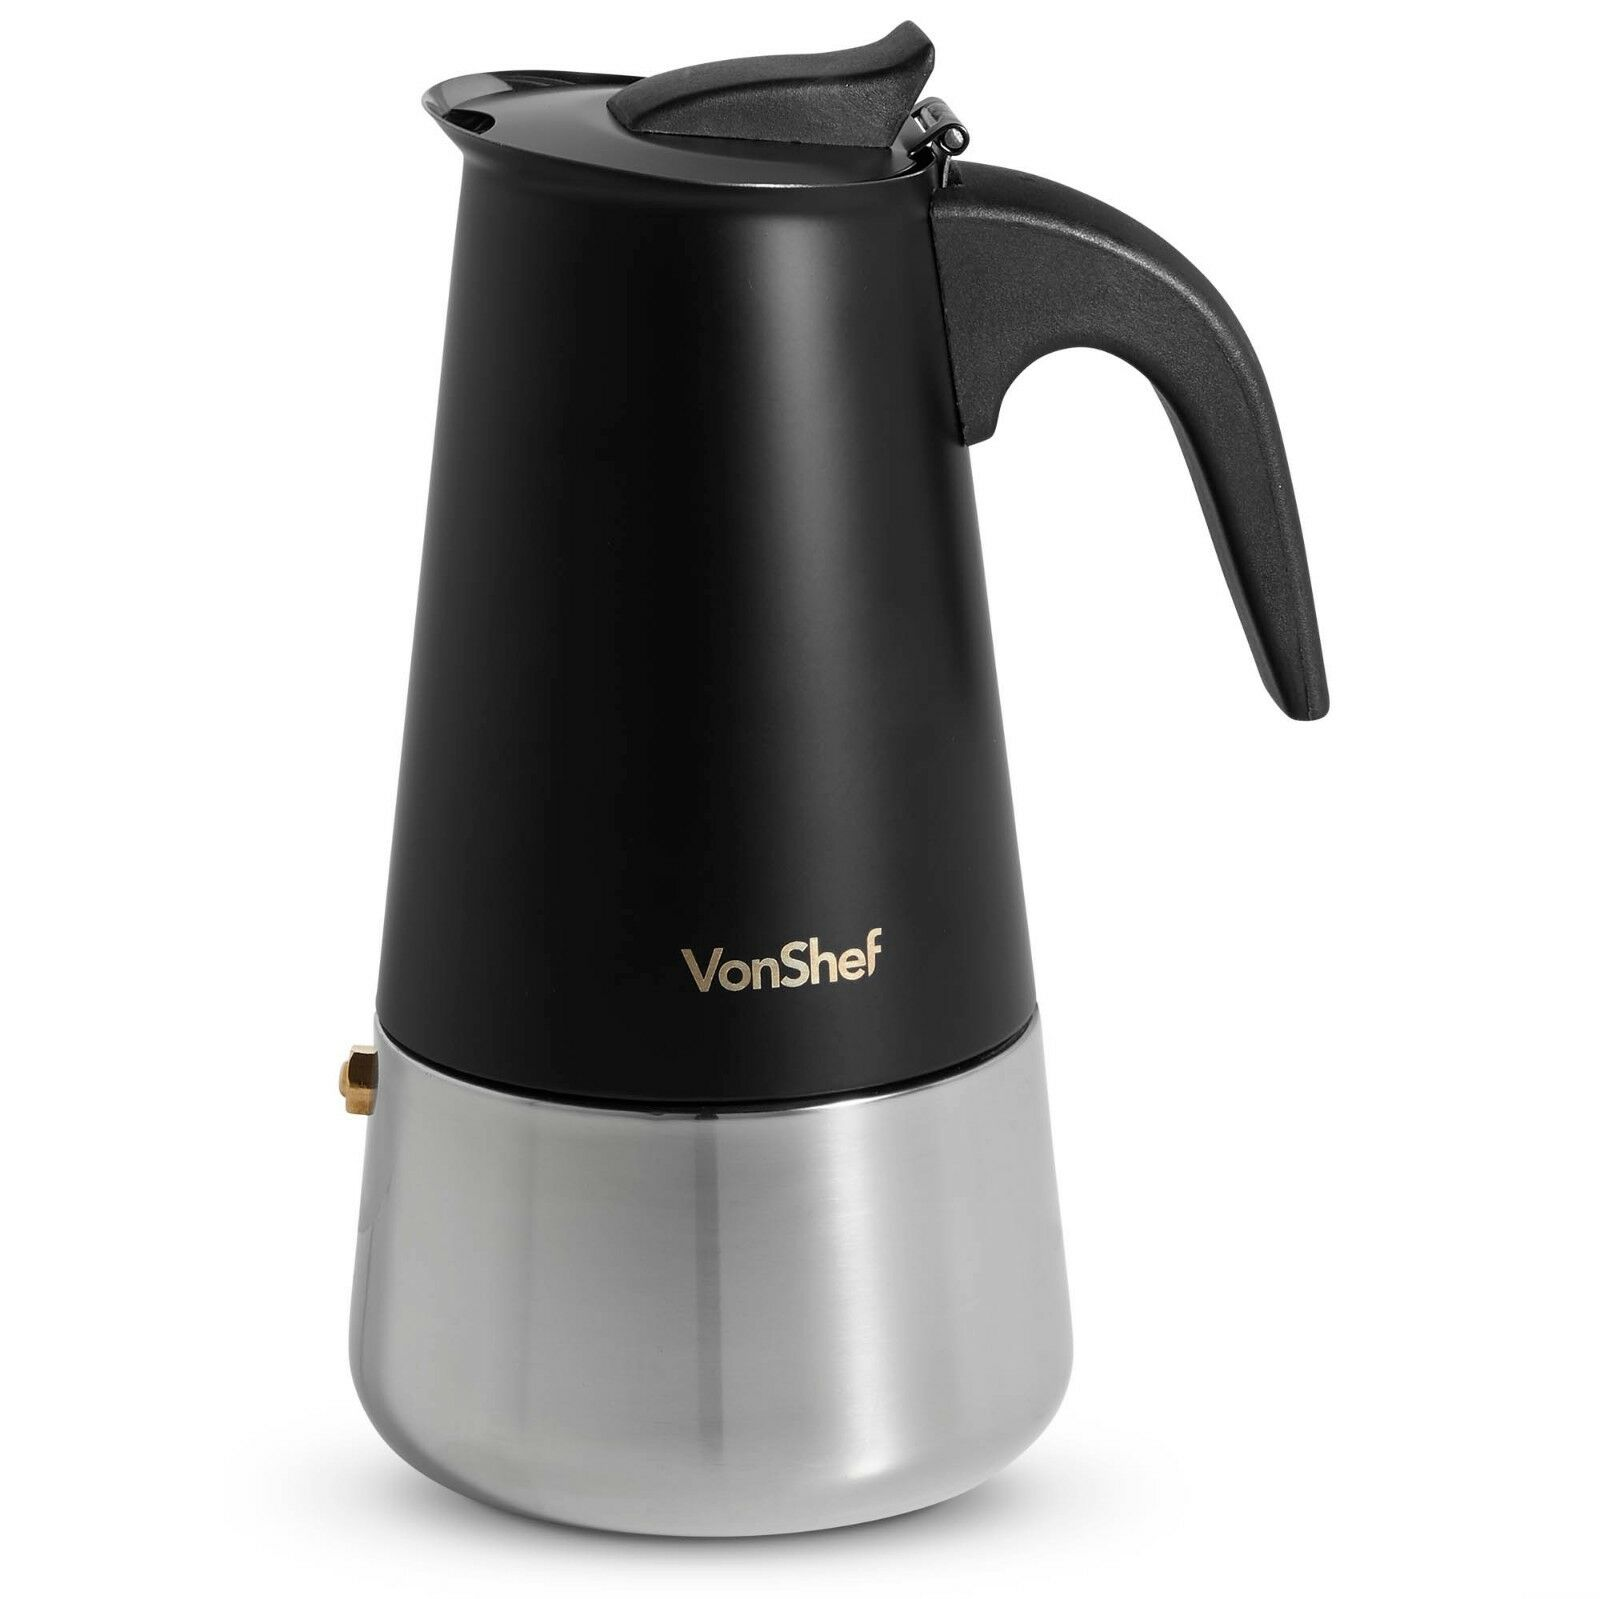 VonShef 6 Cup Espresso Maker Black Stainless Steel Stove Top